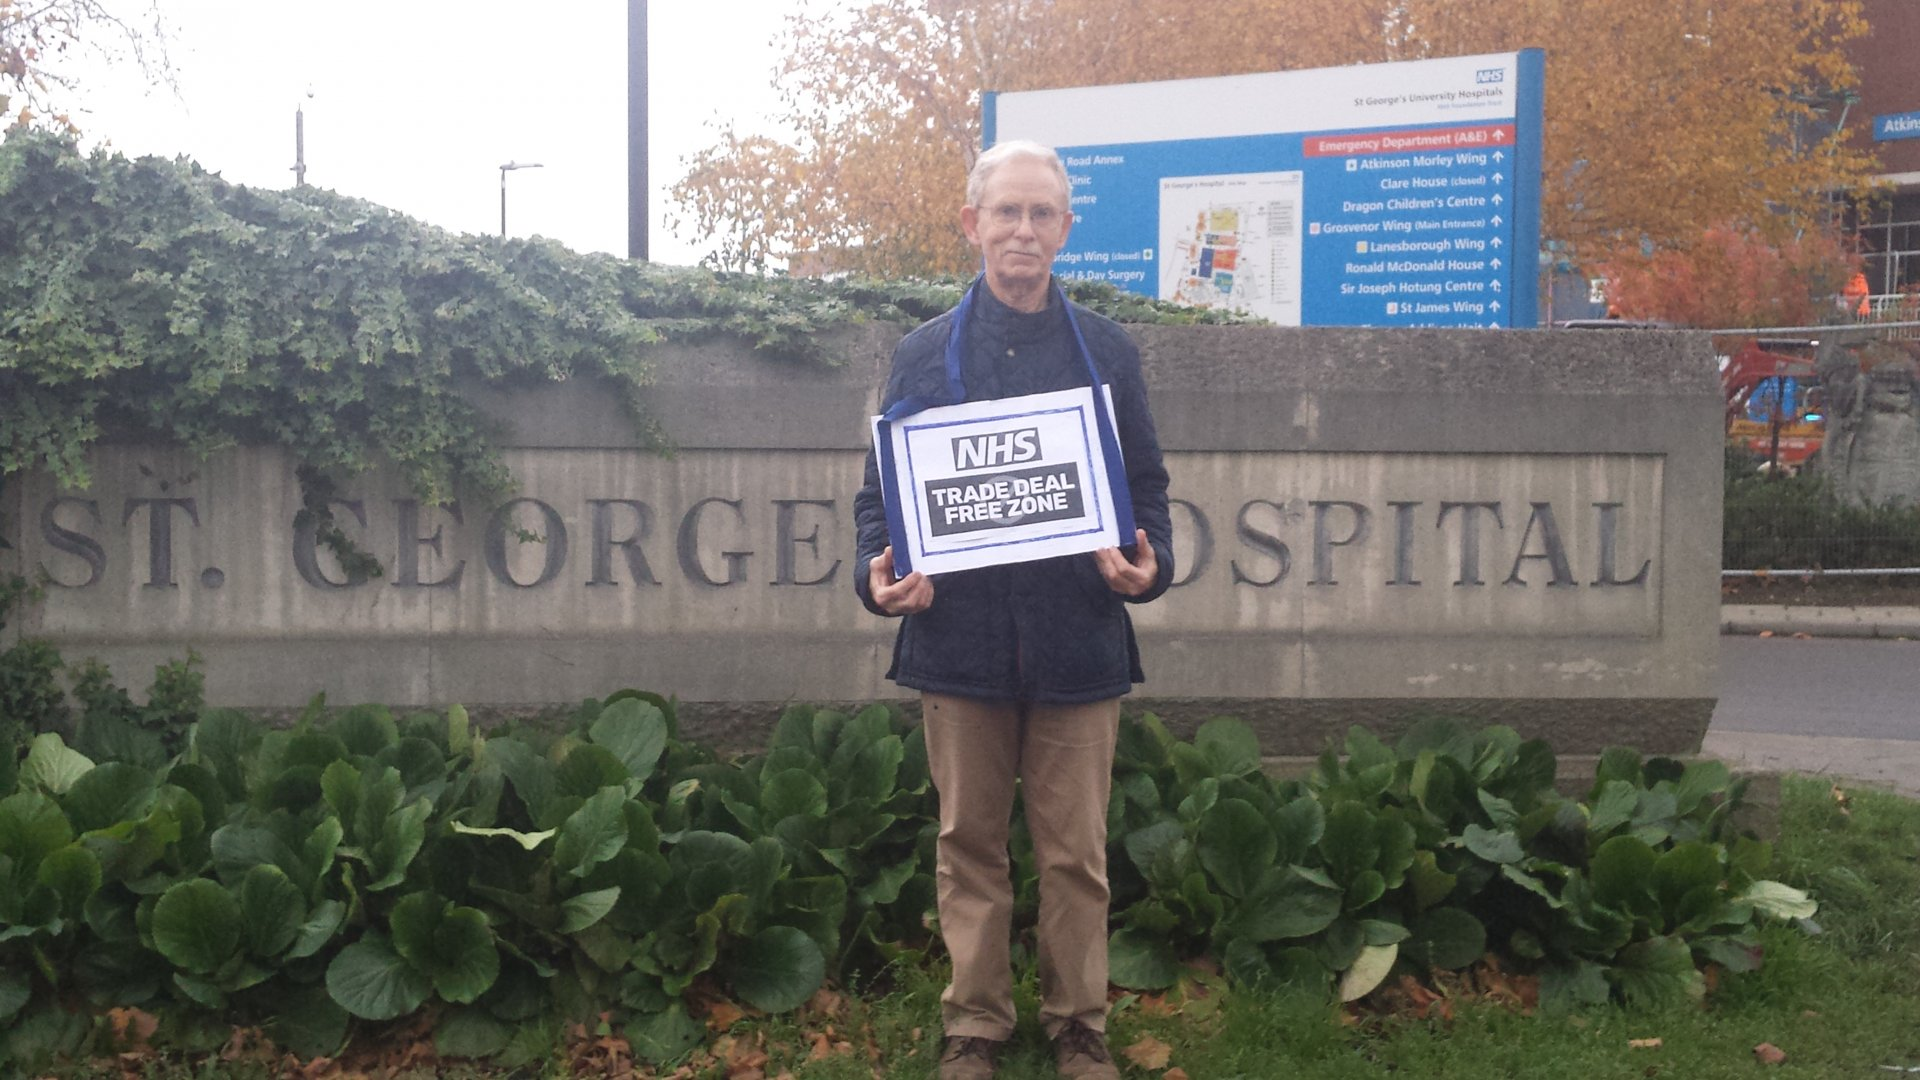 People across the UK are declaring their local NHS ...